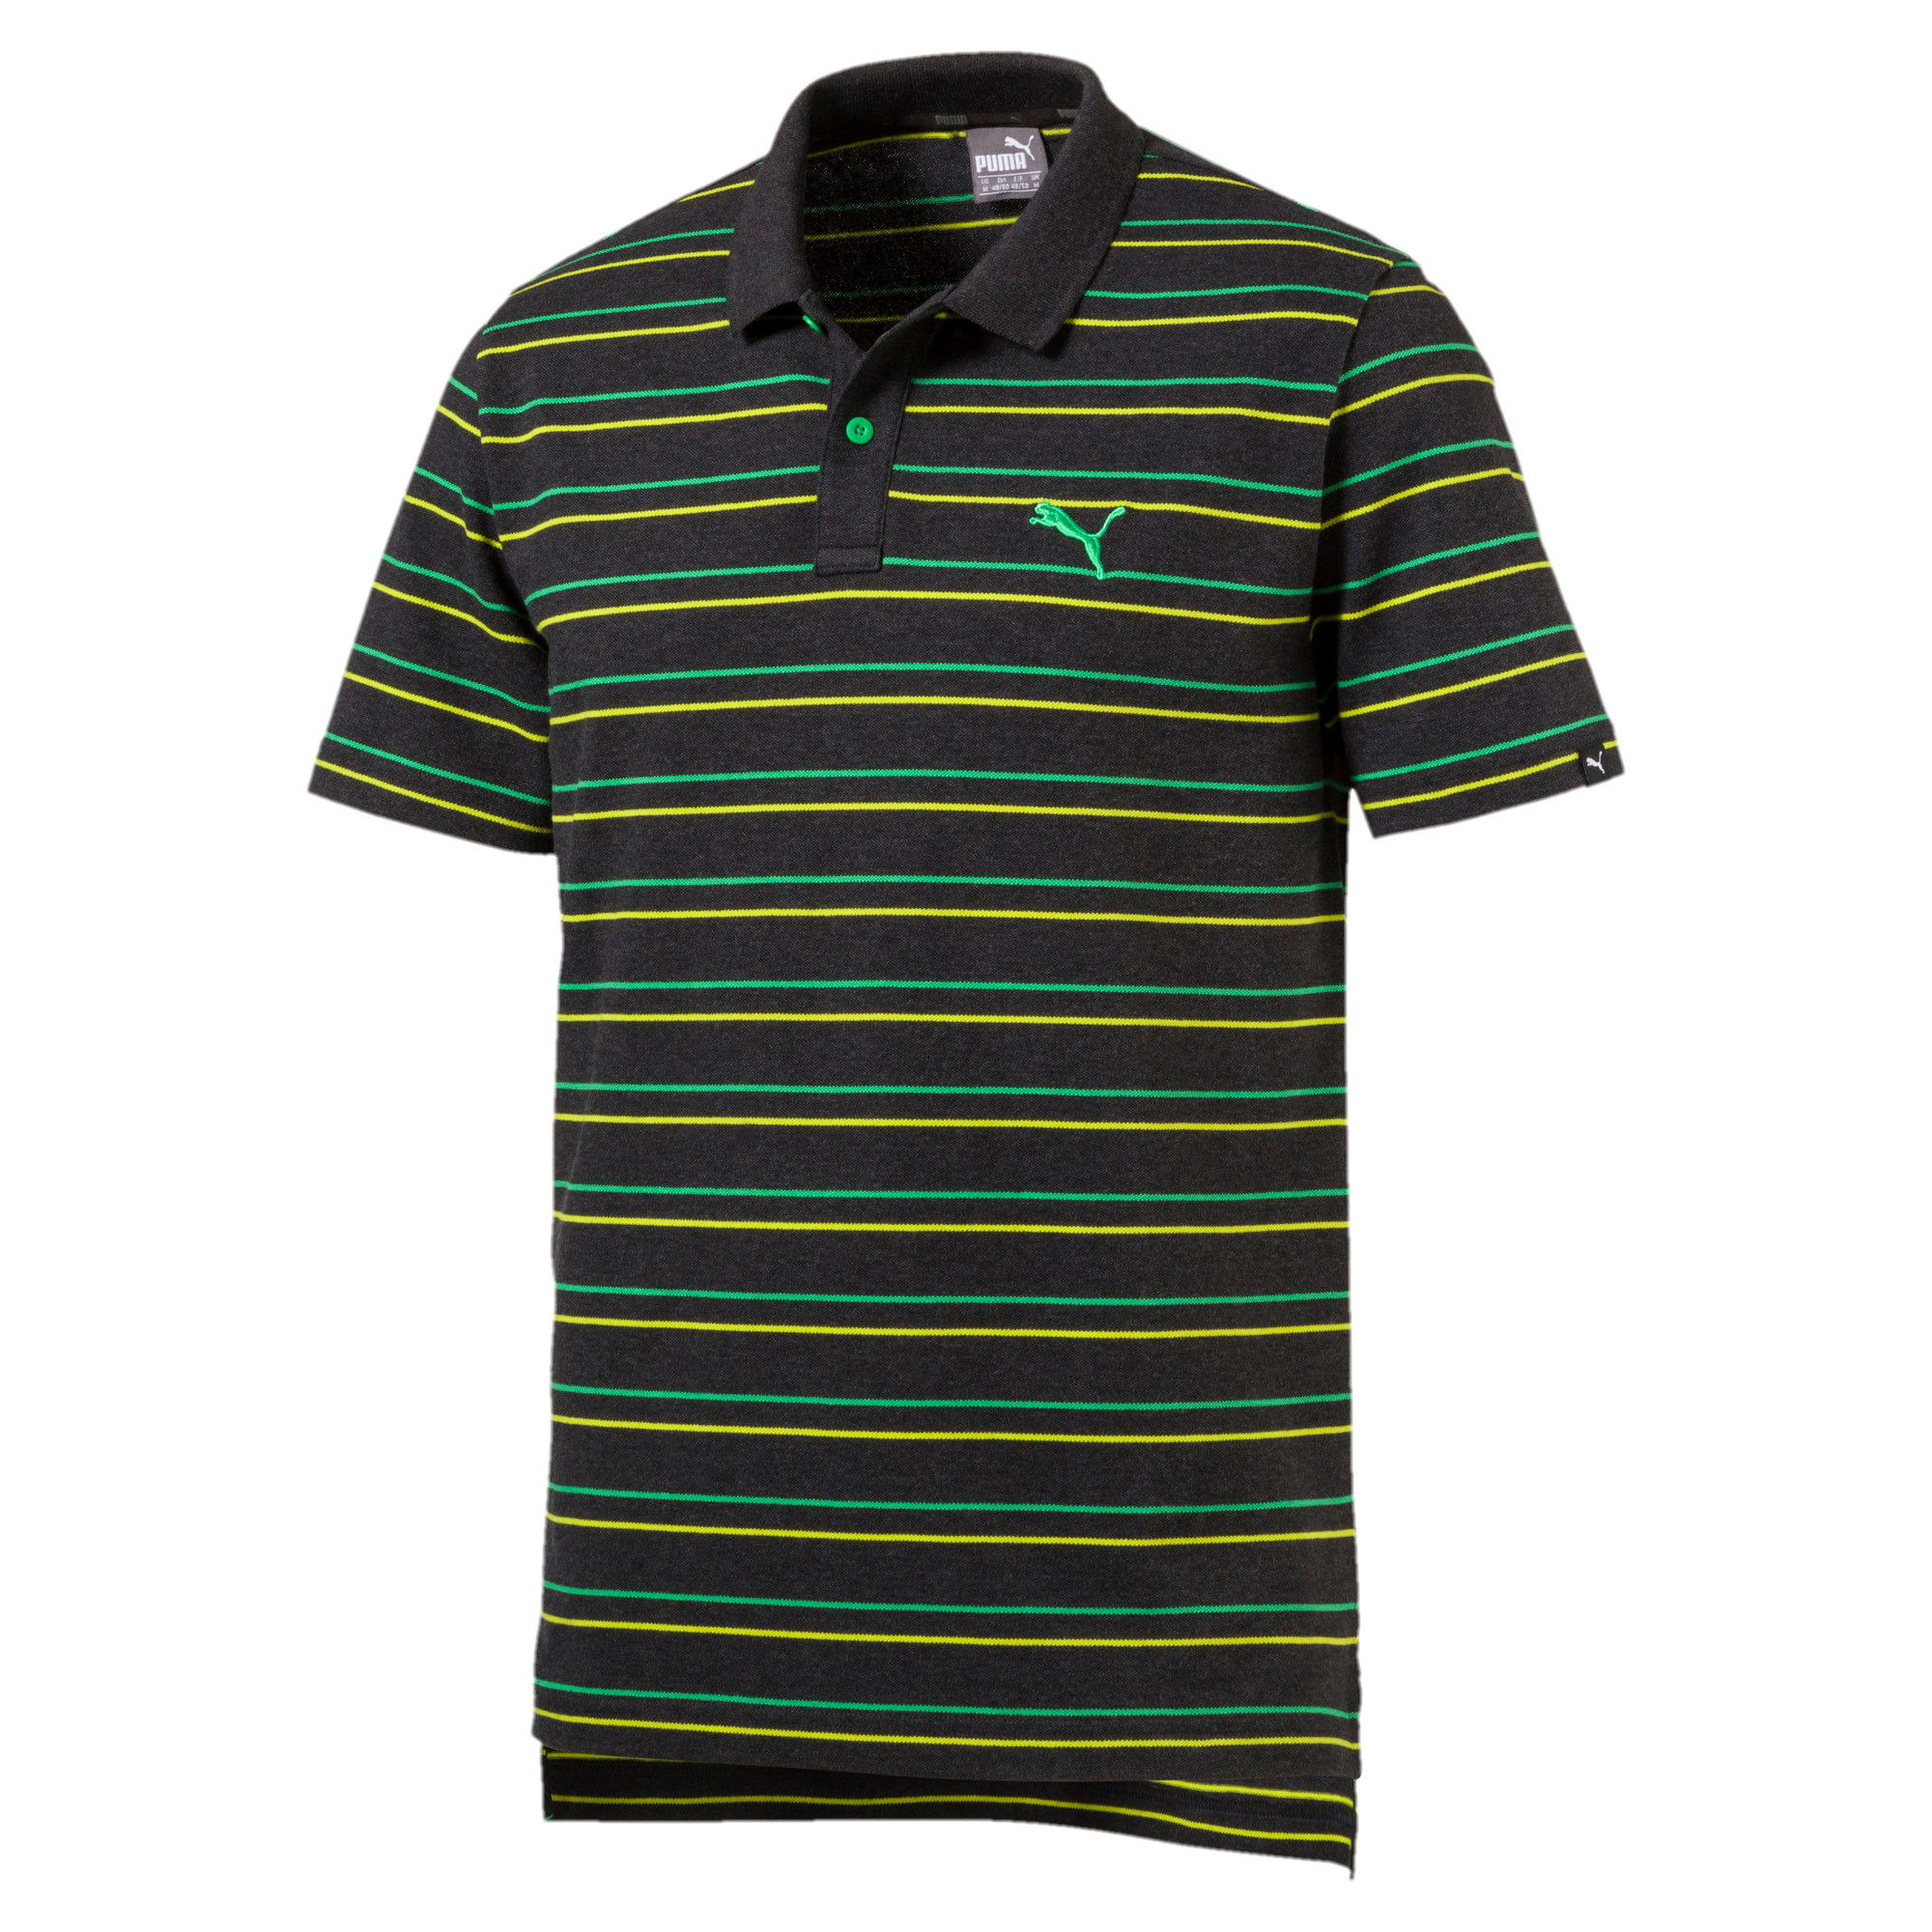 Thumbnail 4 of Sports Stripe Pique Polo, Dark Gray Heather, medium-IND